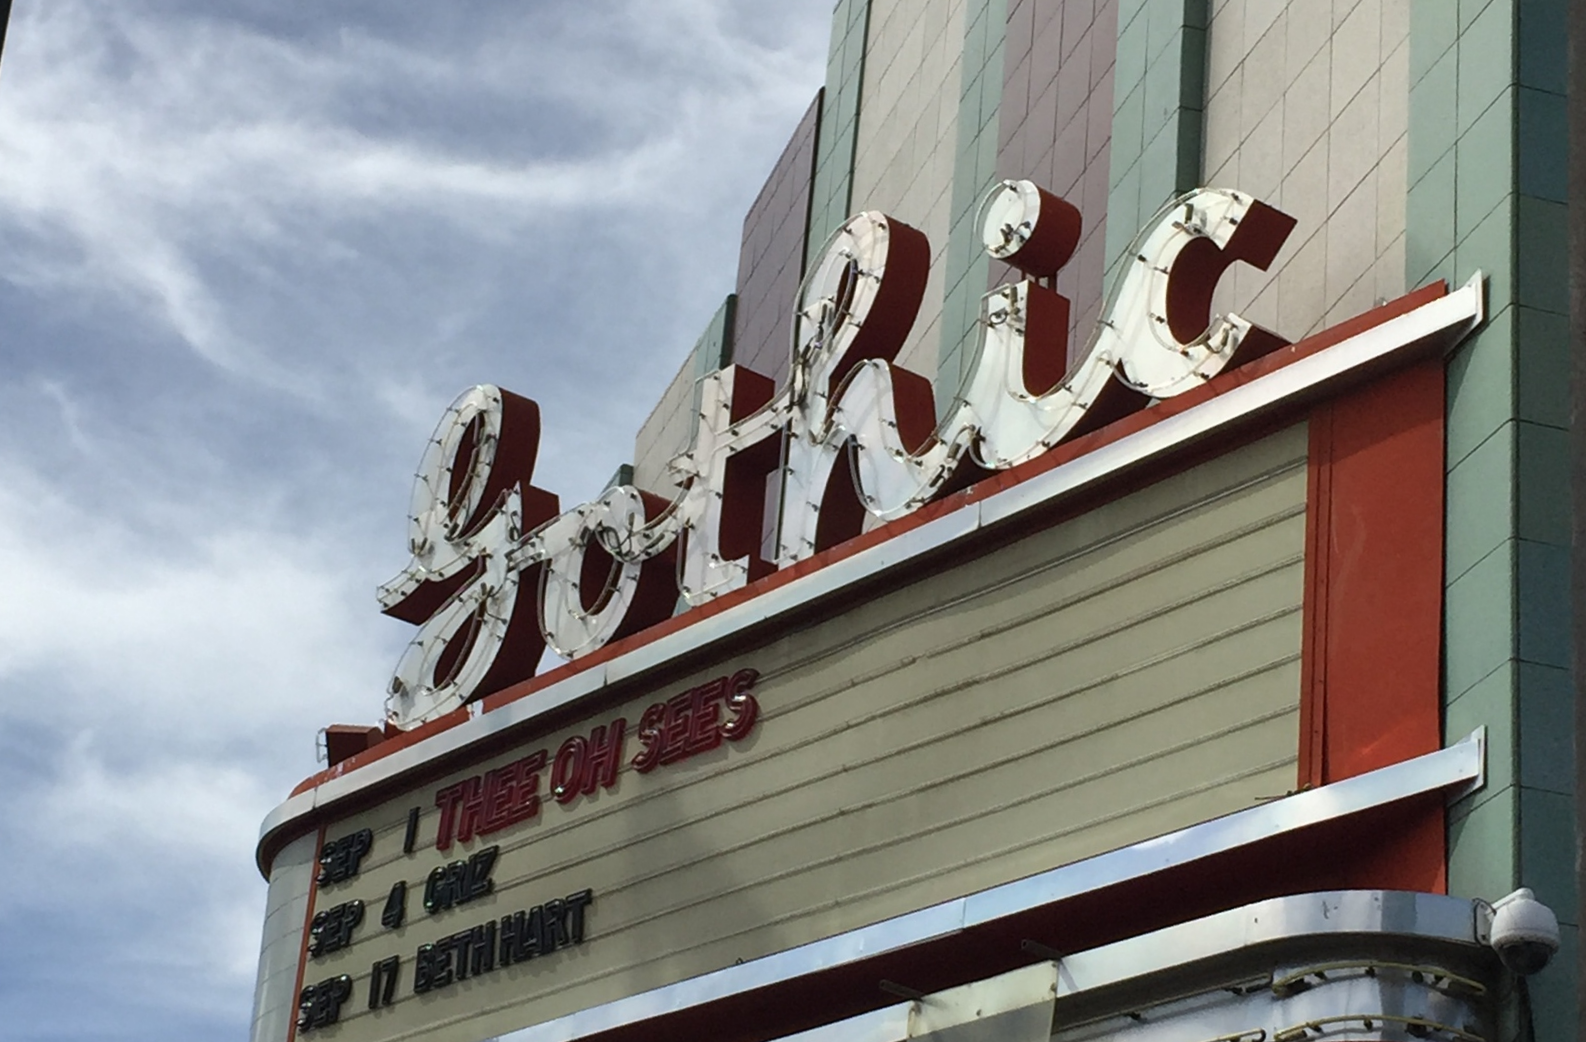 SoBo, aka South Broadway, is lined with an eclectic mix of taverns, clothing stores, art galleries, and some of Denver's best thrifting. There's anything and everything to do amidst the historic feel of Denver.